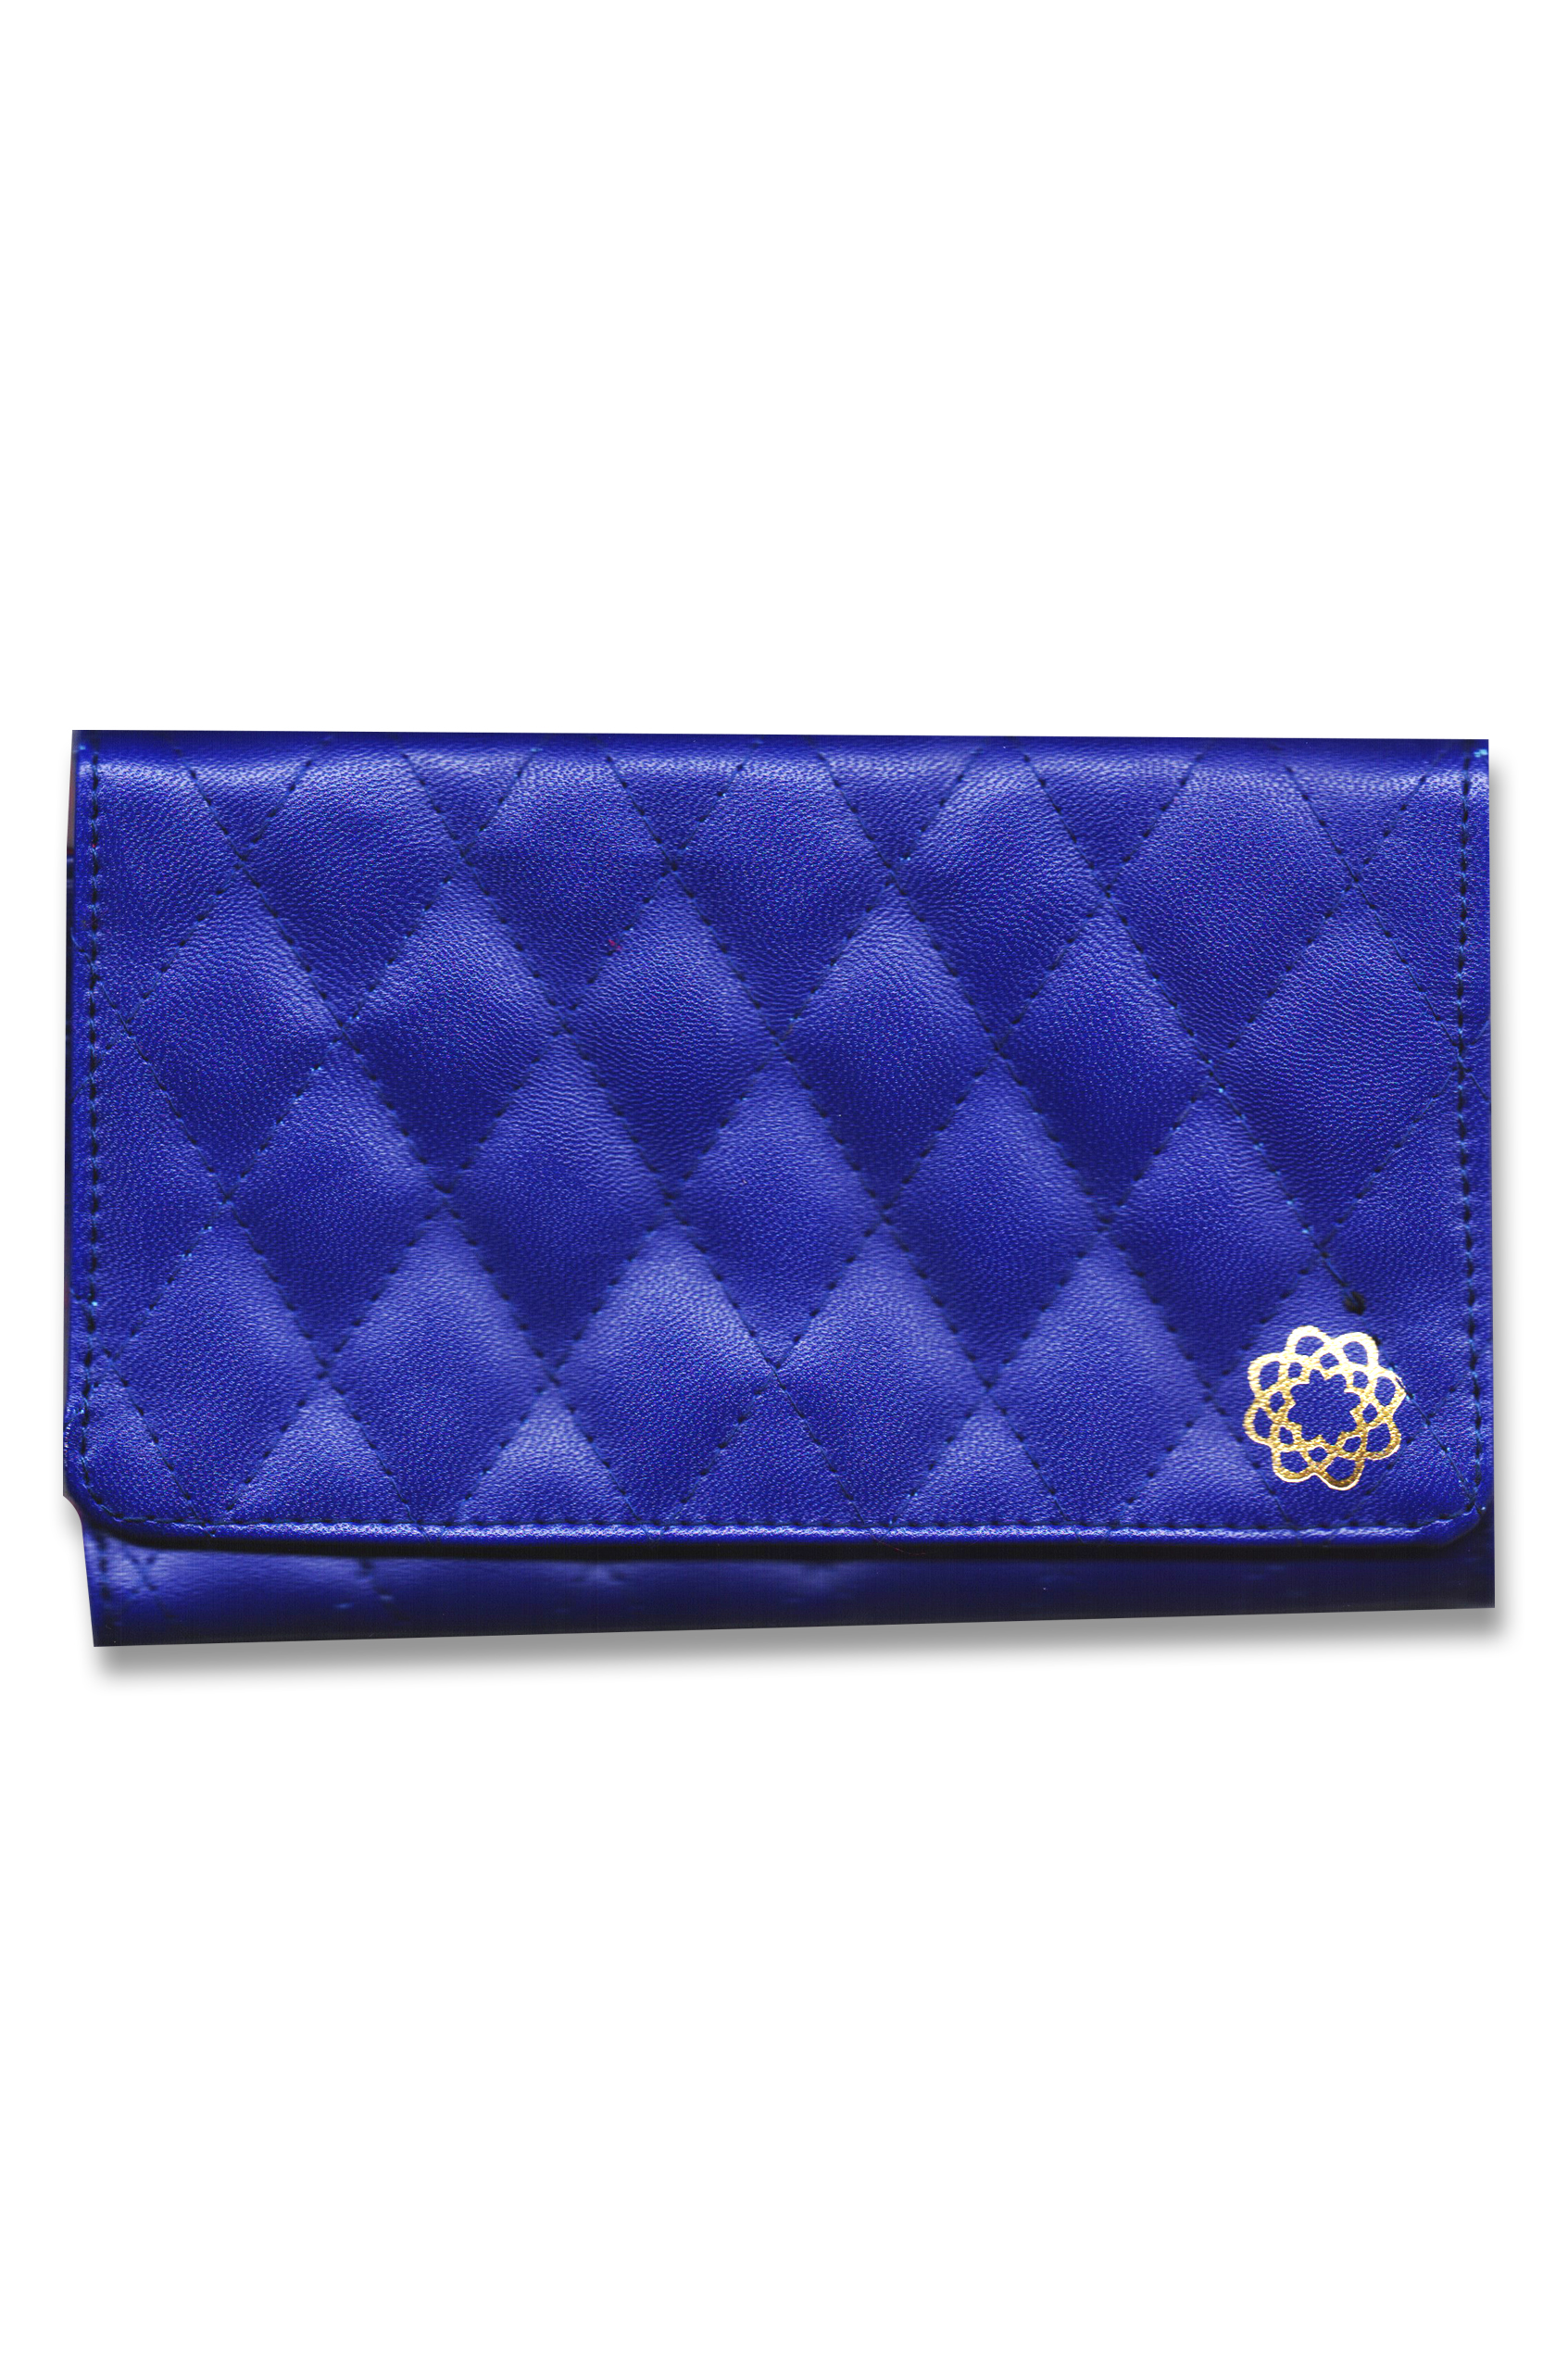 Beads Pouch RBLU 011